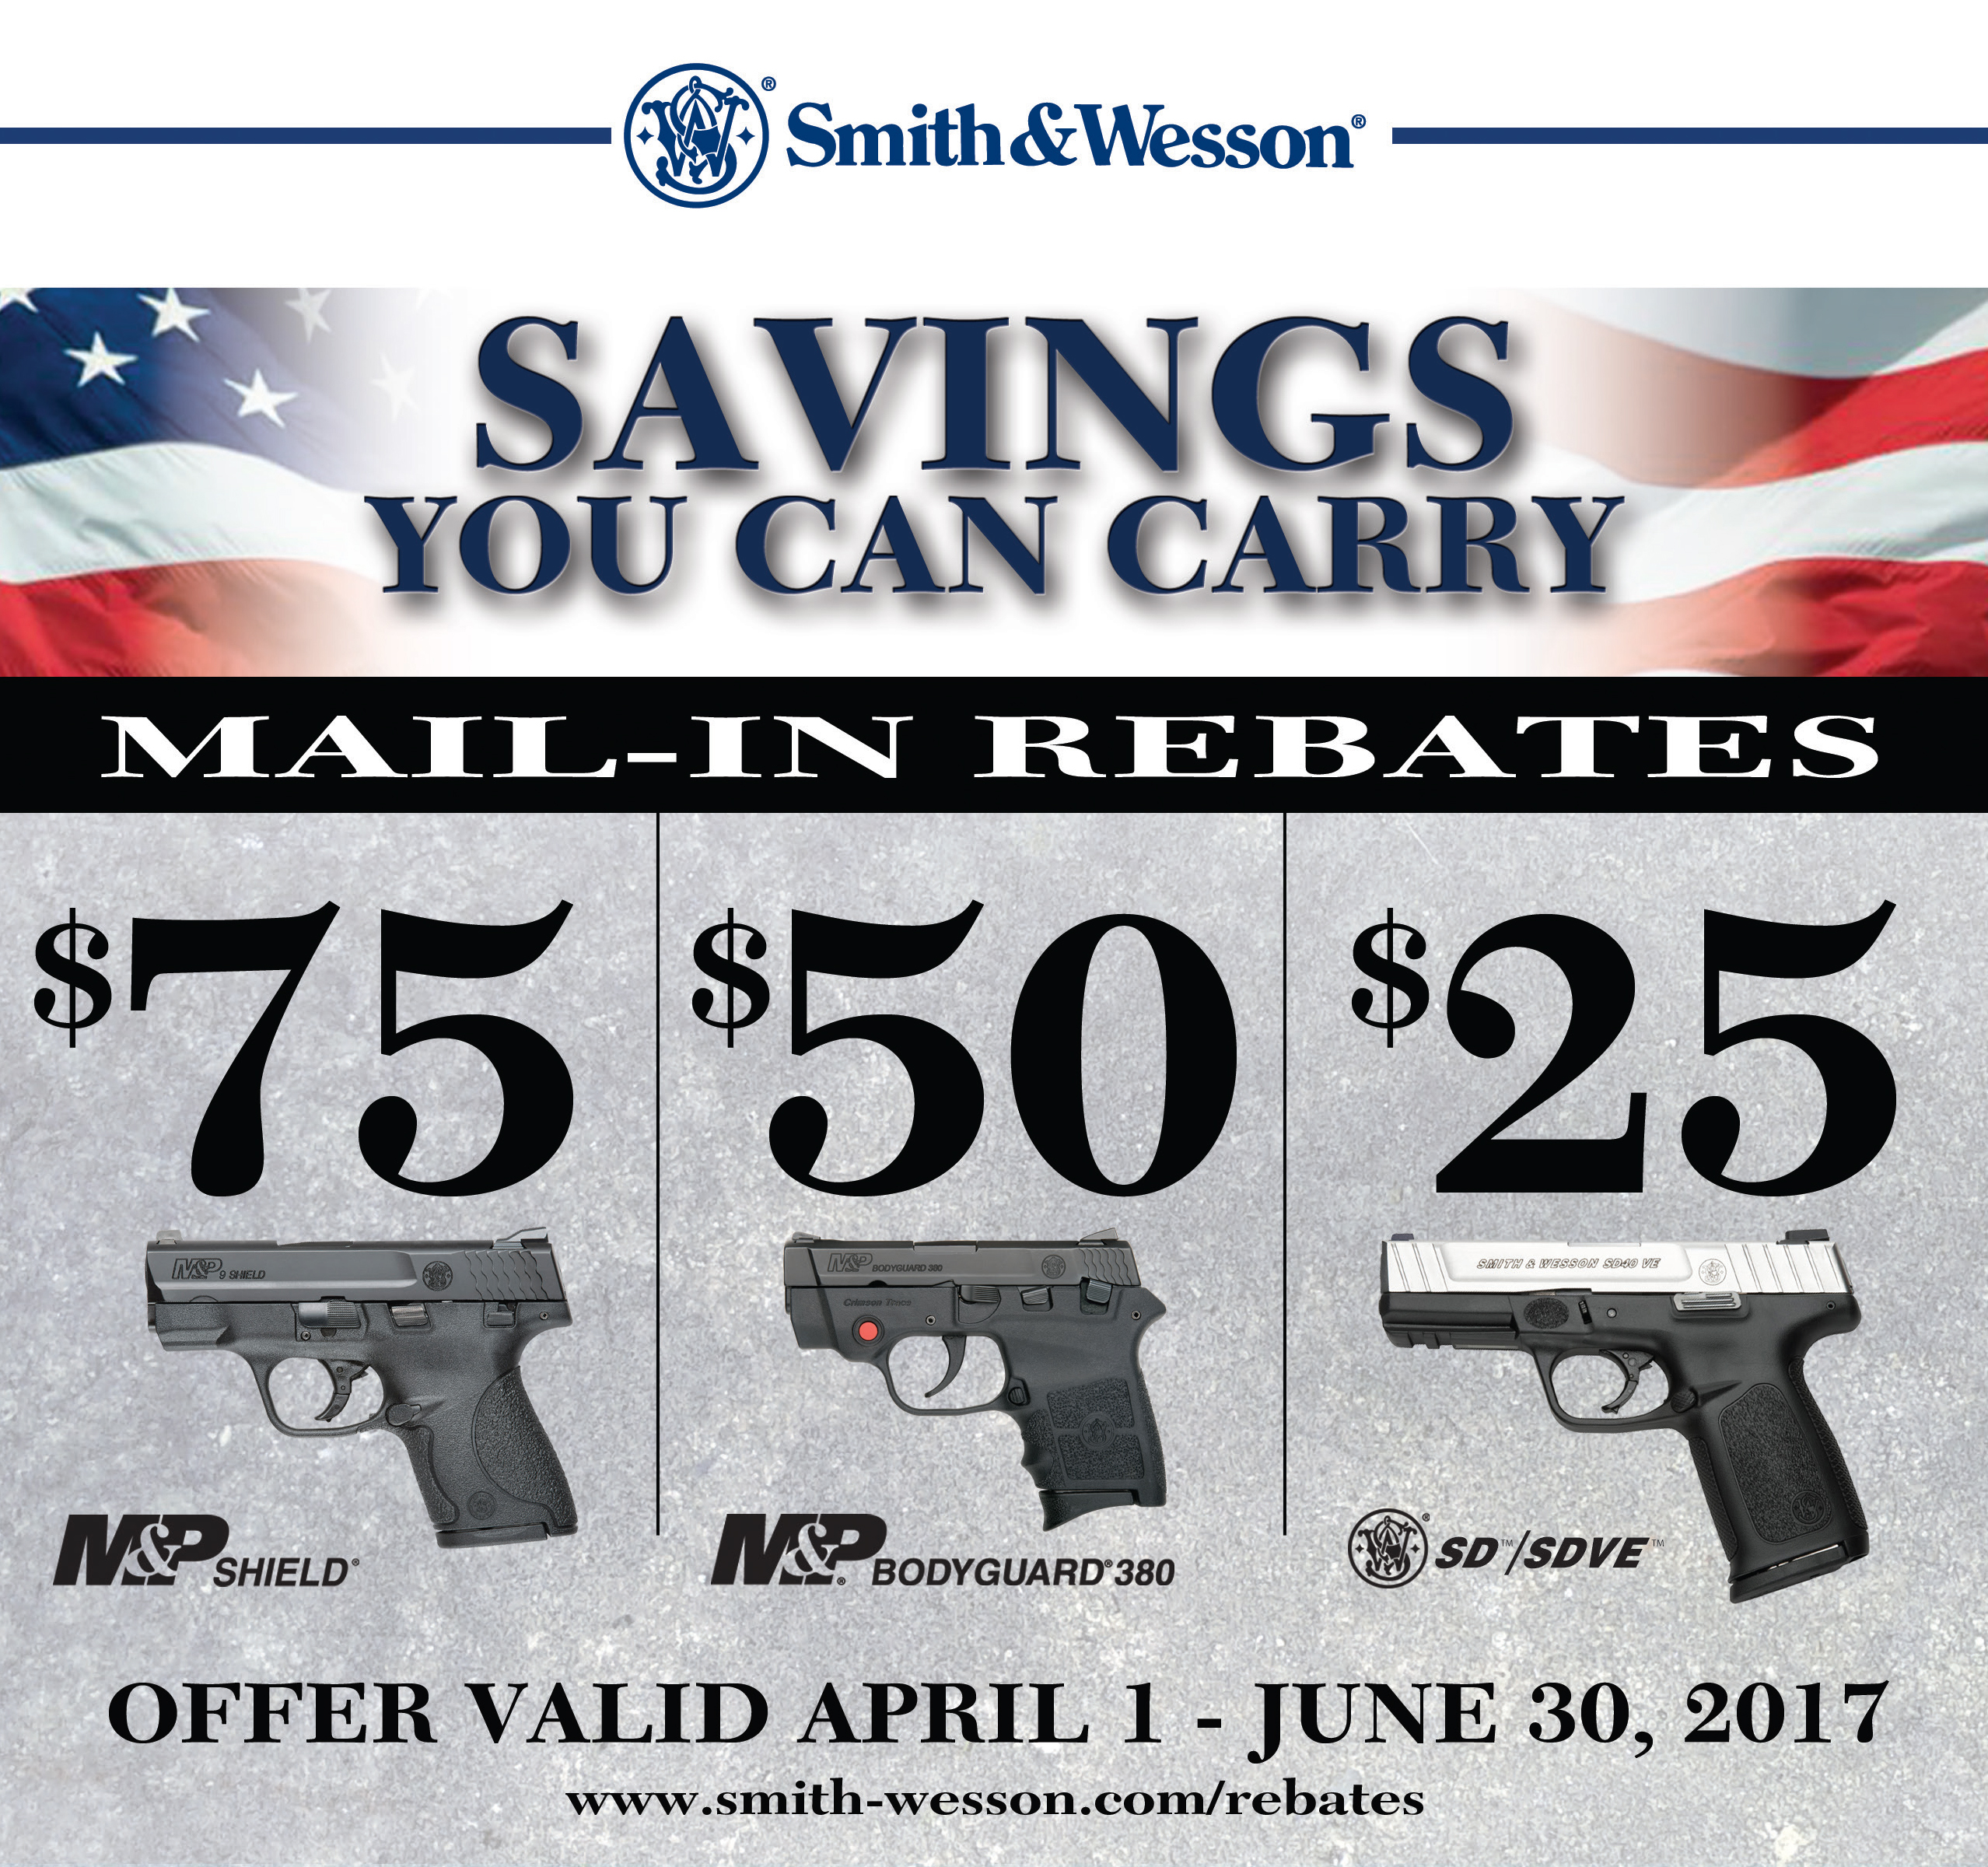 Smith & Wesson Rebate!